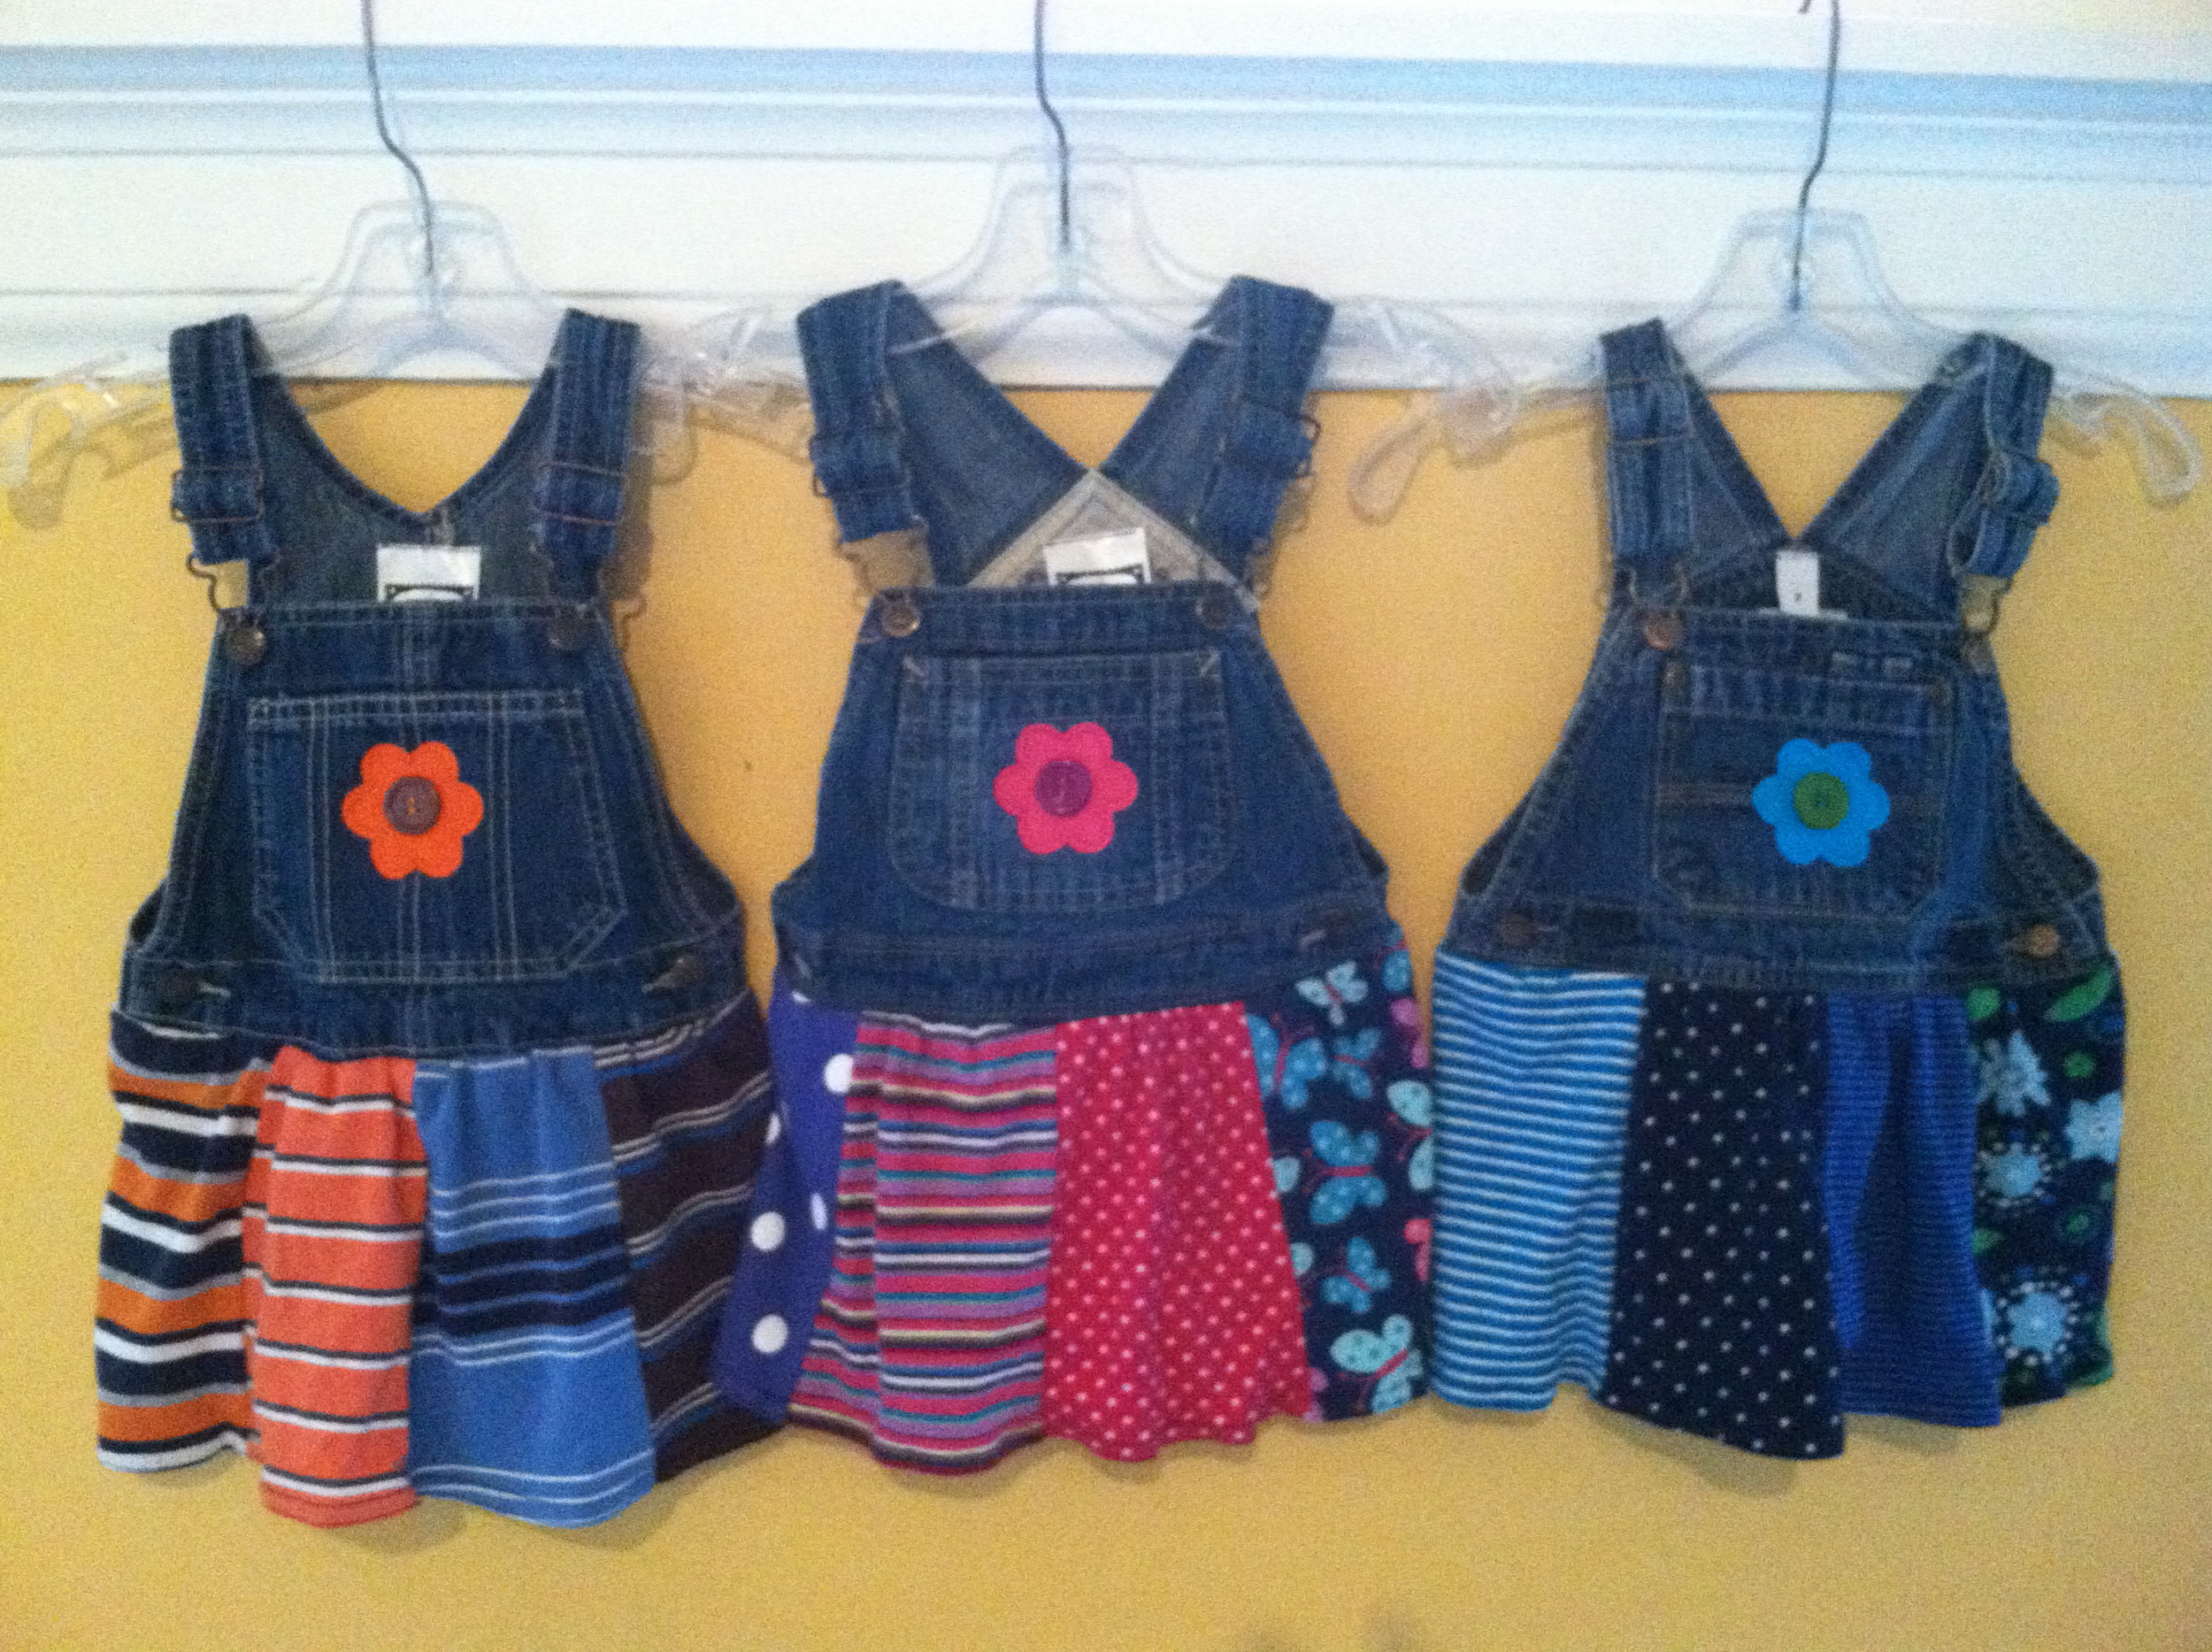 Child's upcycled overall jumper, sizes xs 6-12mo,  s 18mo-2T, m 2-4, L 4-6, xl 8-10 $35